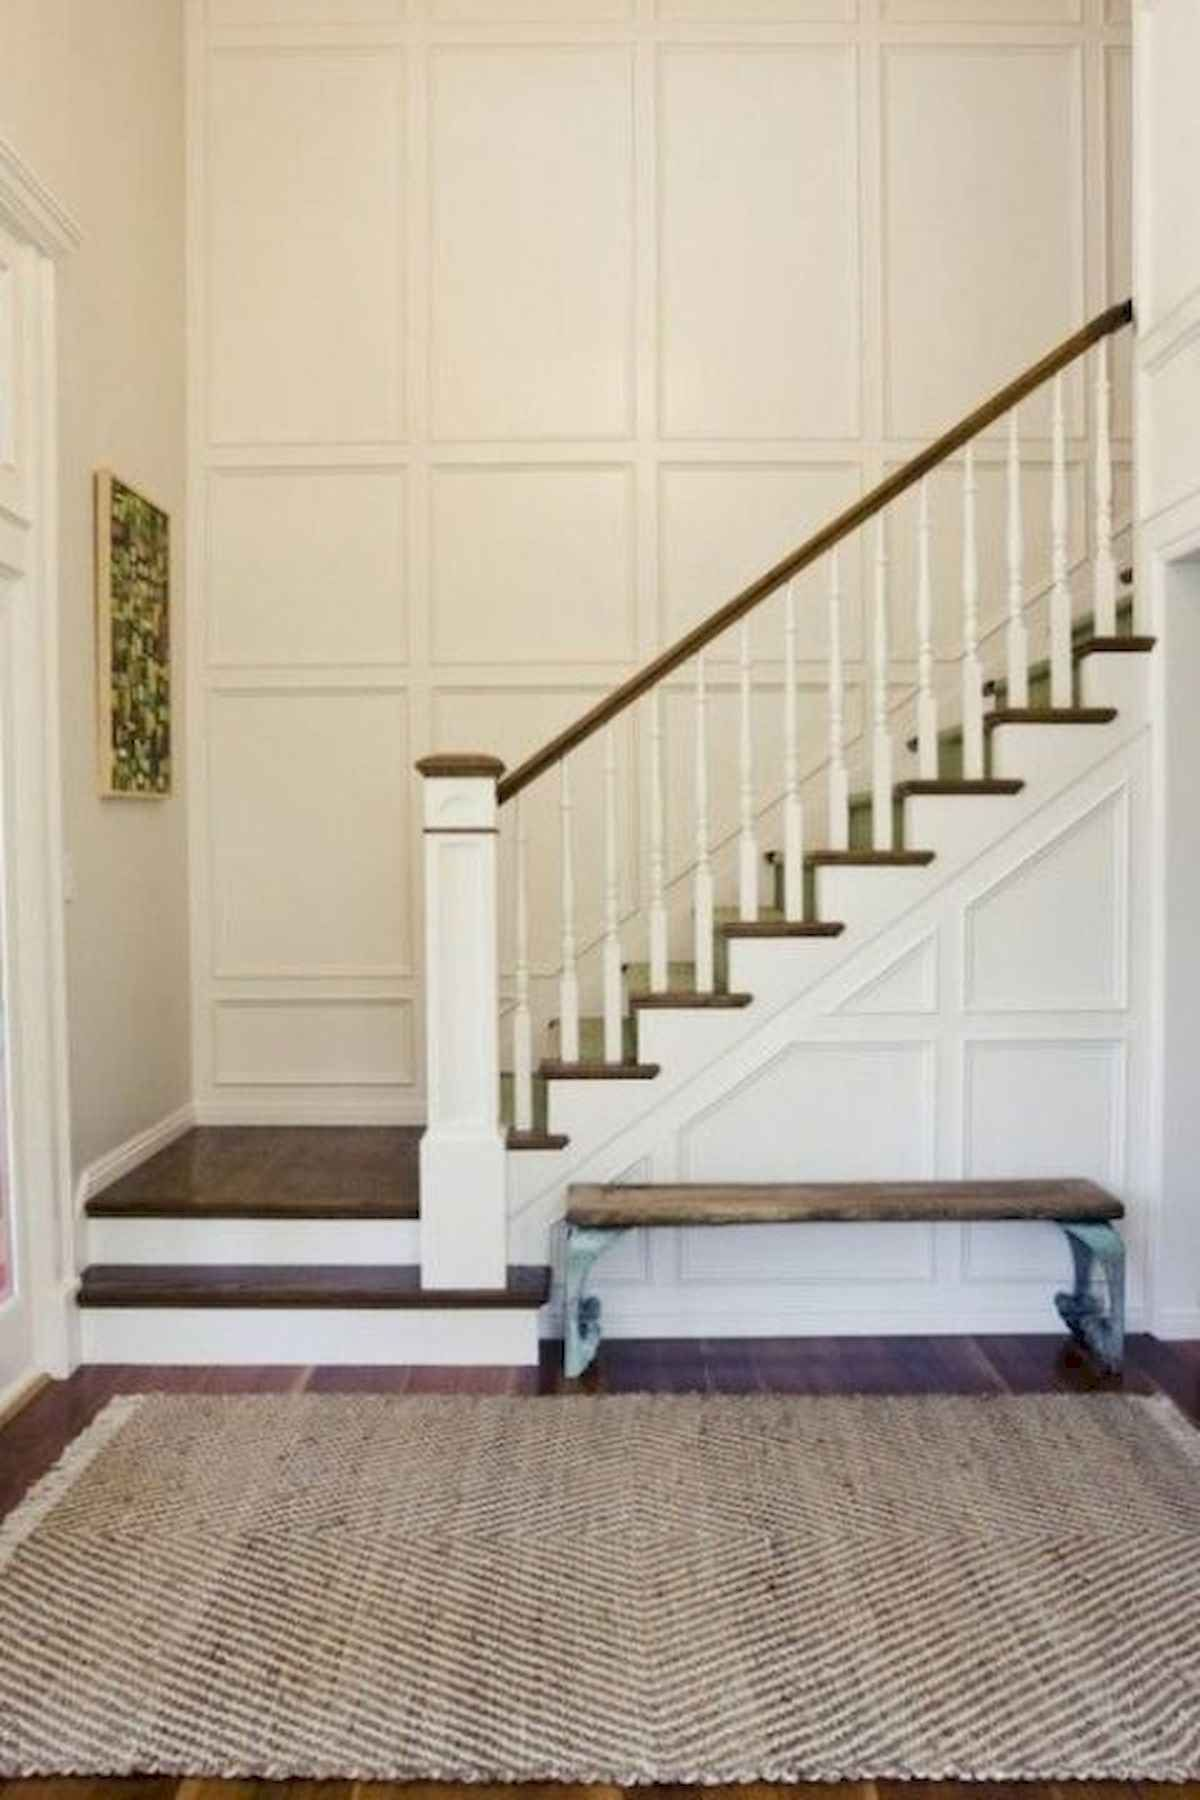 70 Farmhouse Wall Paneling Design Ideas For Living Room Bathroom Kitchen And Bedroom 11 Coachdecor Com Staircase Molding Stairs Trim Staircase Remodel